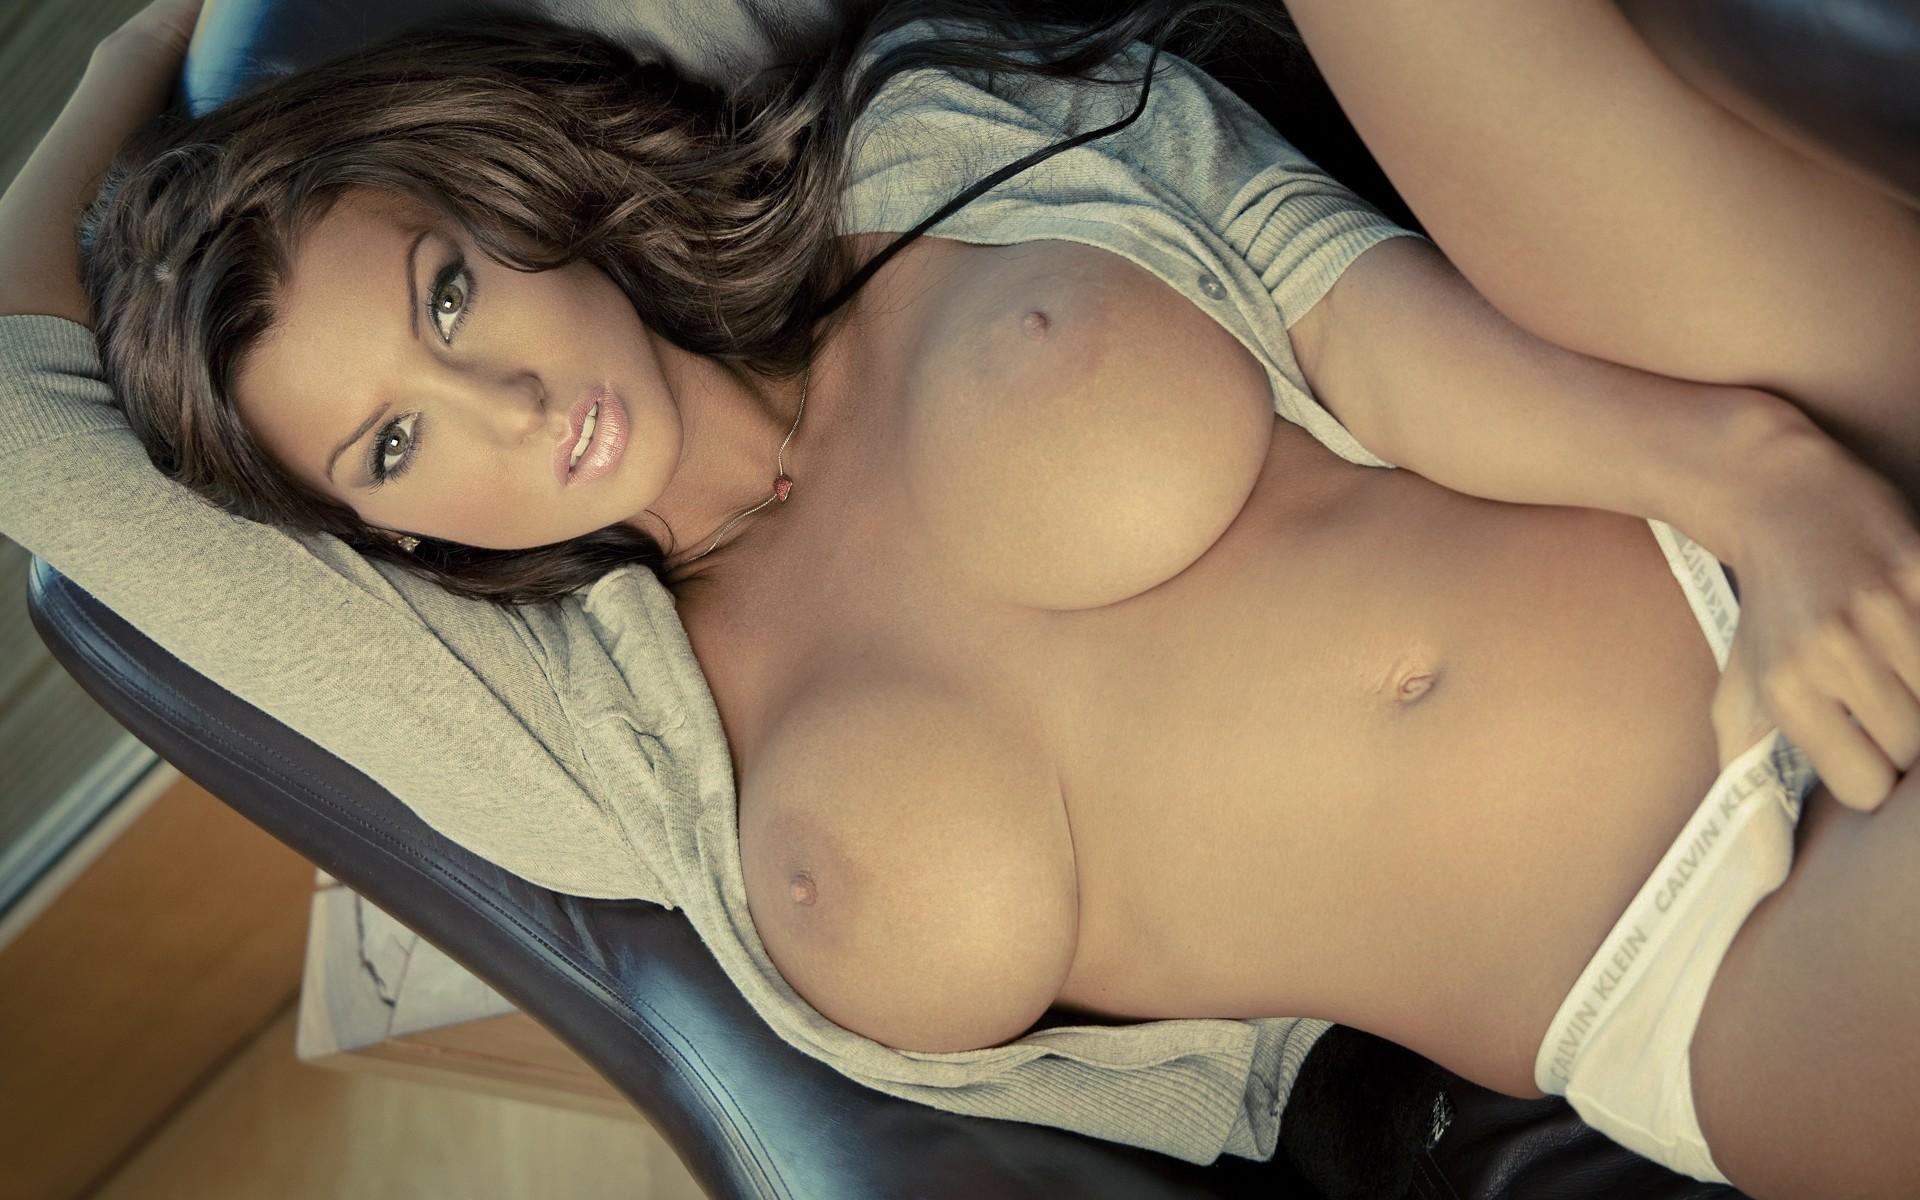 nylon-dailymotion-girl-boobs-hot-sex